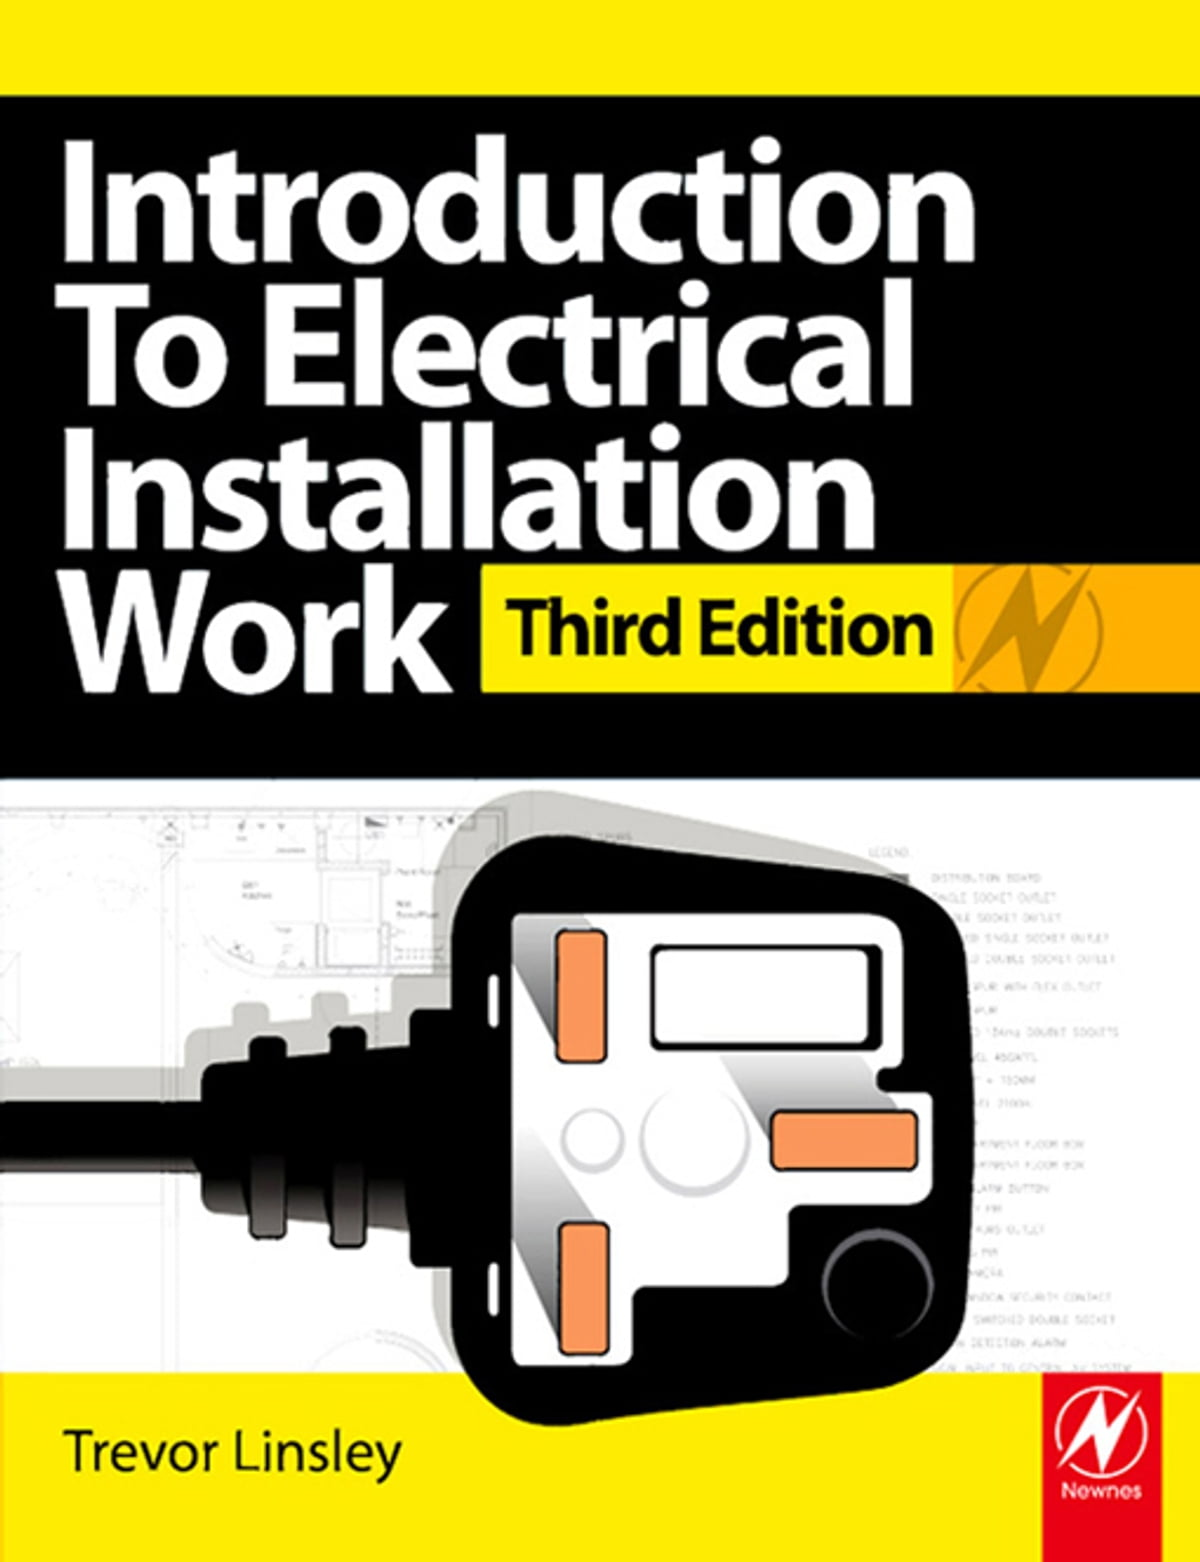 Introduction To Electrical Installation Work Ebook By Trevor Linsley Iee Wiring Regulations 17th Edition Free Download 9781136270451 Rakuten Kobo